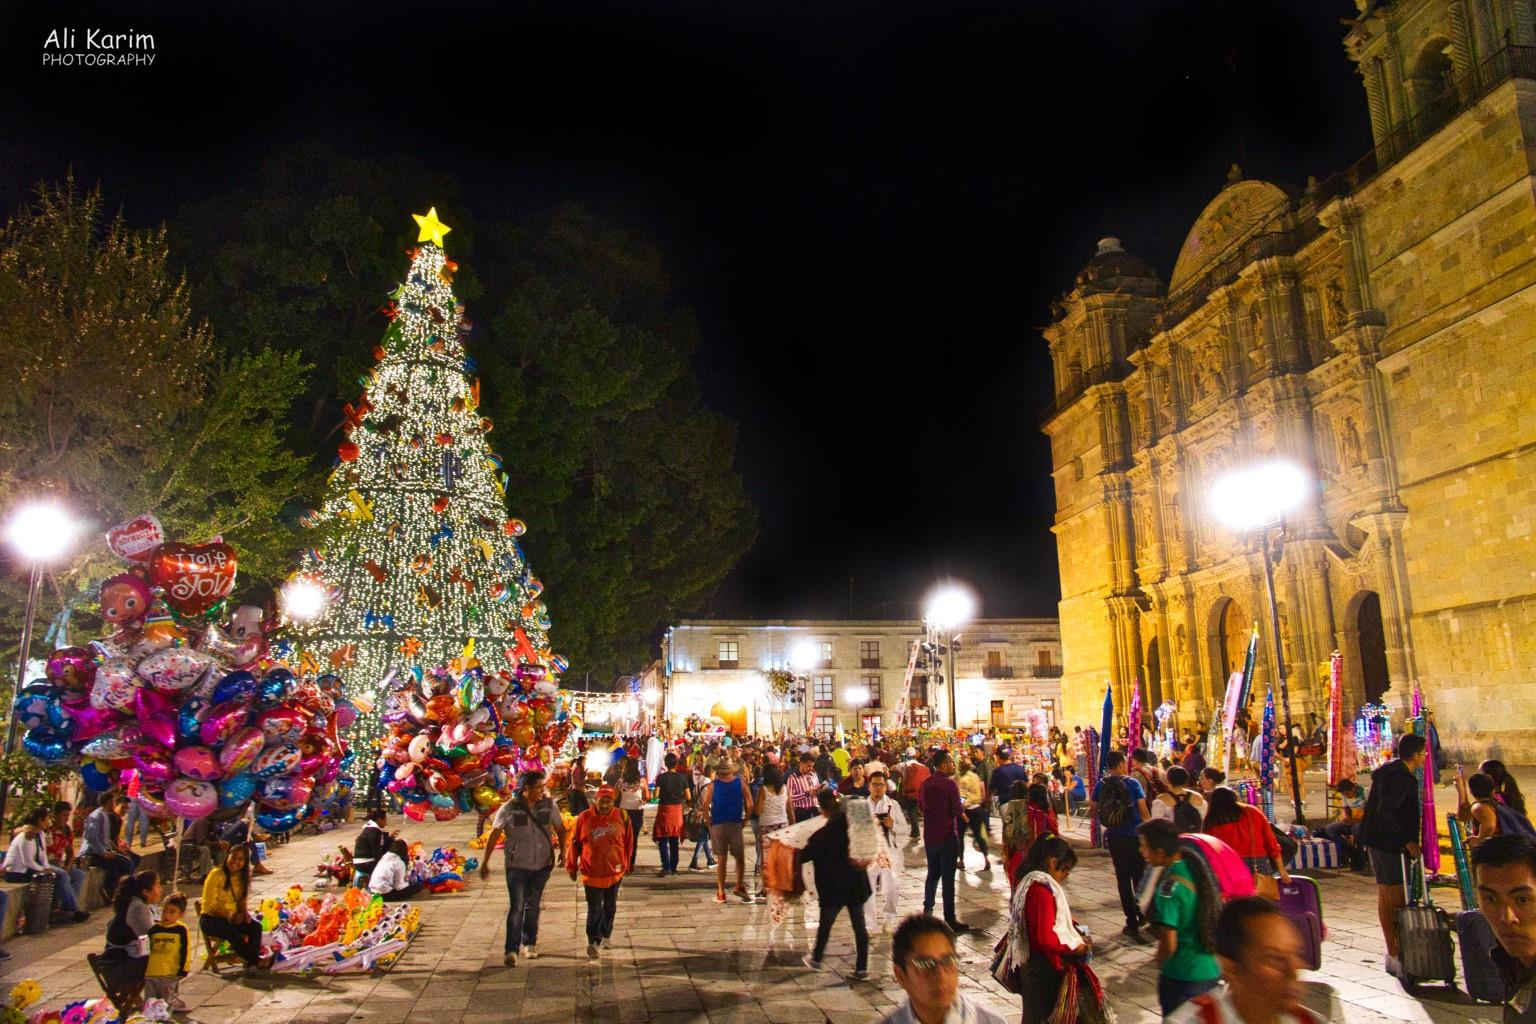 Oaxaca, Mexico At one corner of the Zocalo was the Oaxaca Cathedral, equally festive and busy